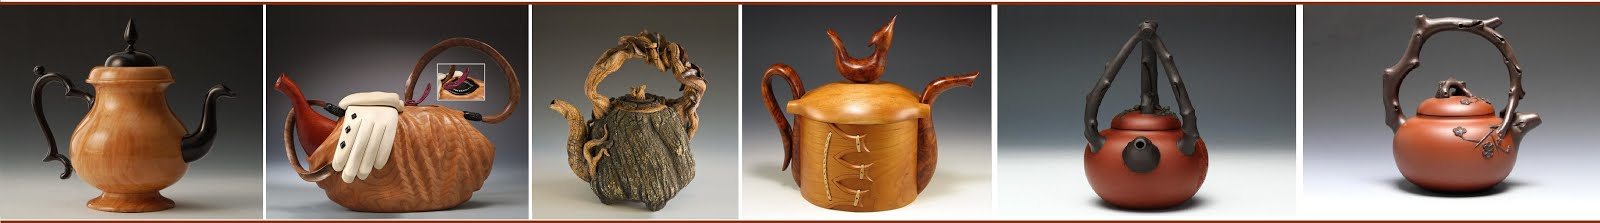 Handcrafted Art Work TEAPOTS